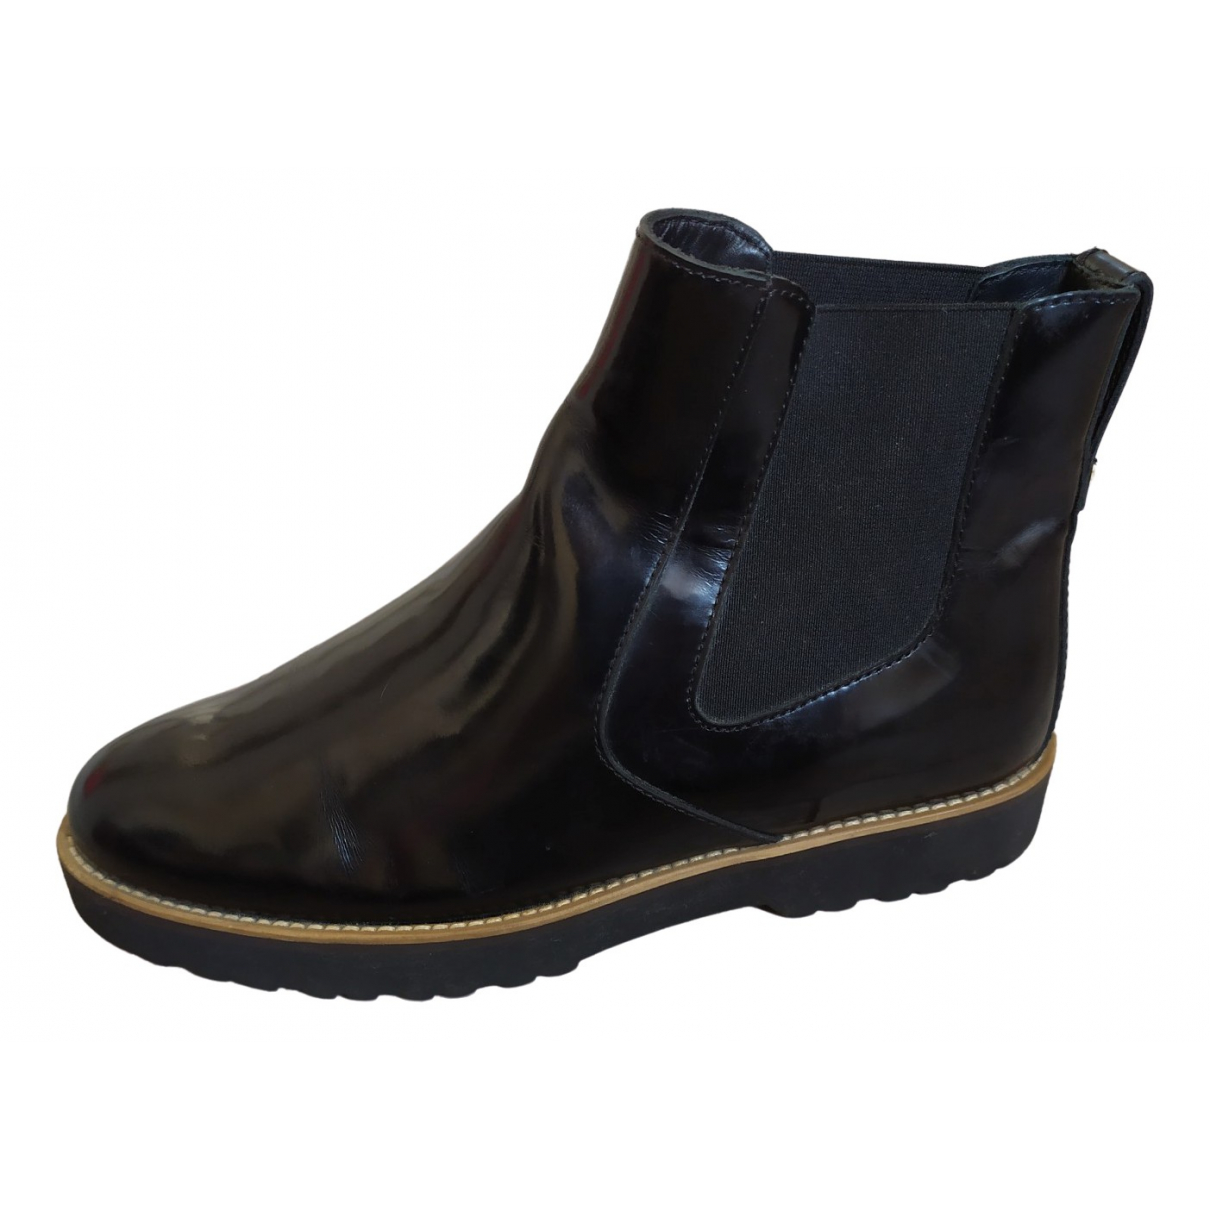 Hogan \N Black Leather Ankle boots for Women 37 EU